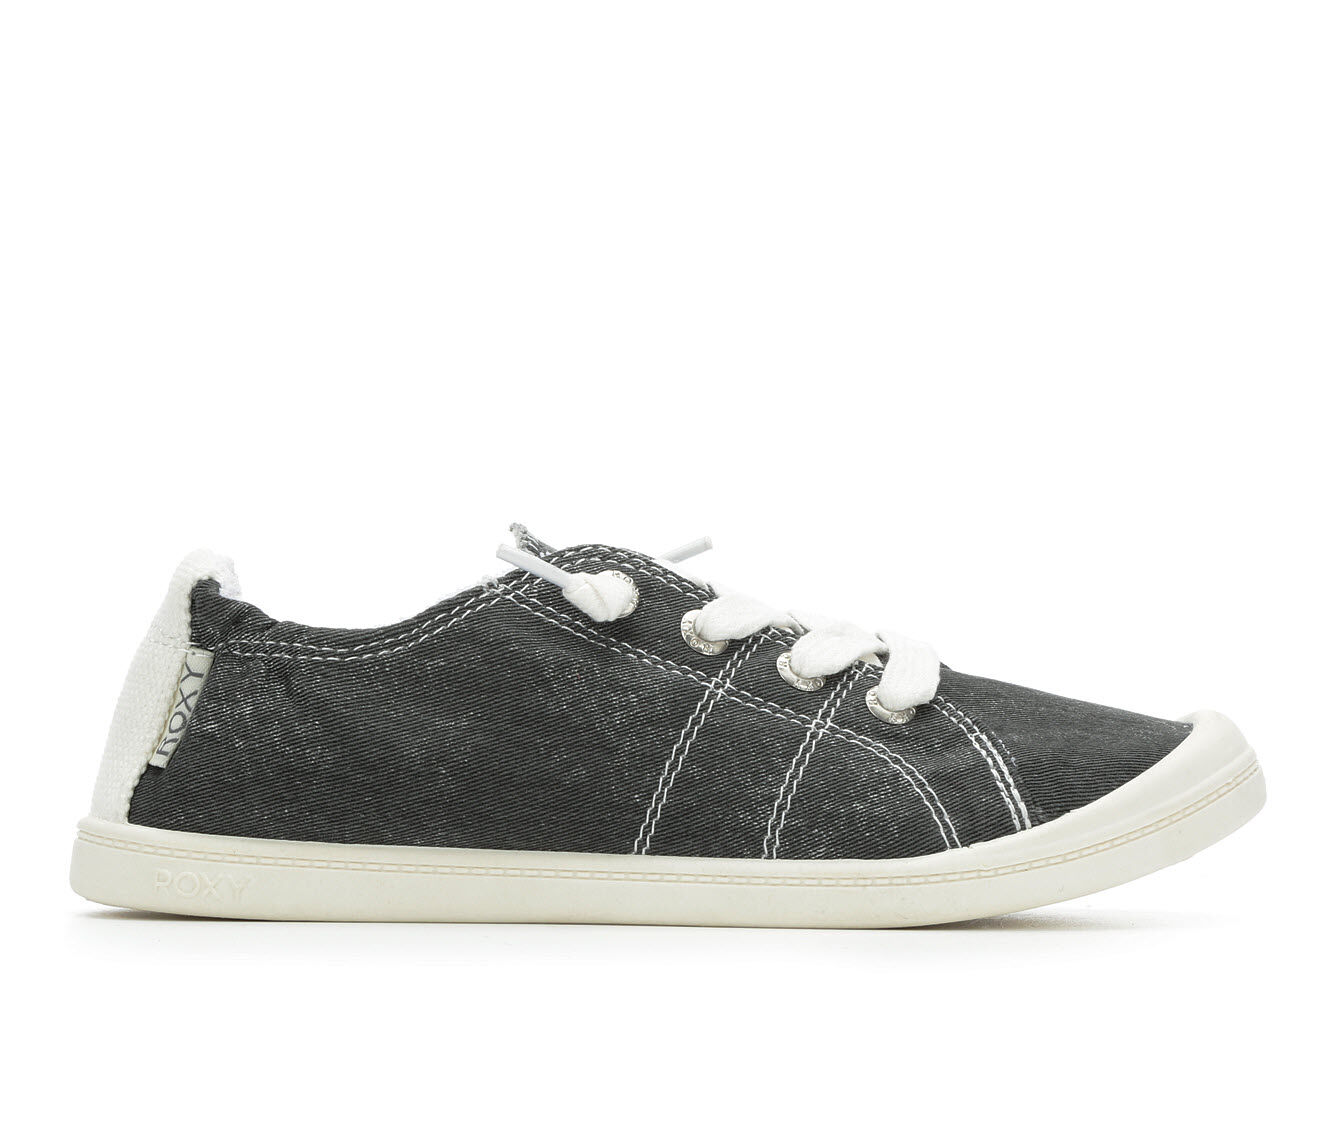 Bulk Discount Women's Roxy Bayshore Sneakers Black